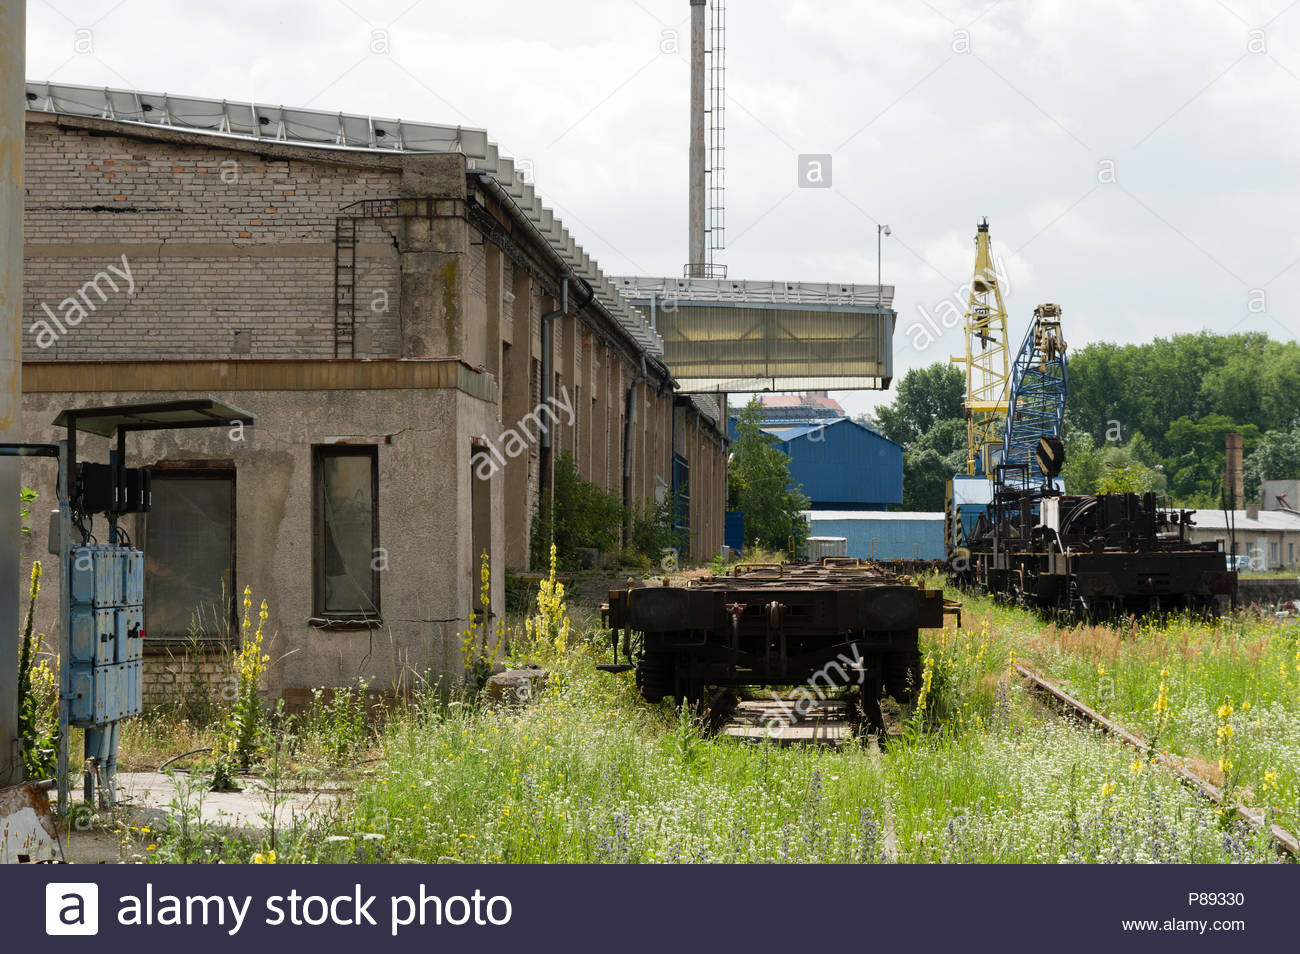 Abandoned looking industrial shipyard with large crane and railtracks - Stock Image